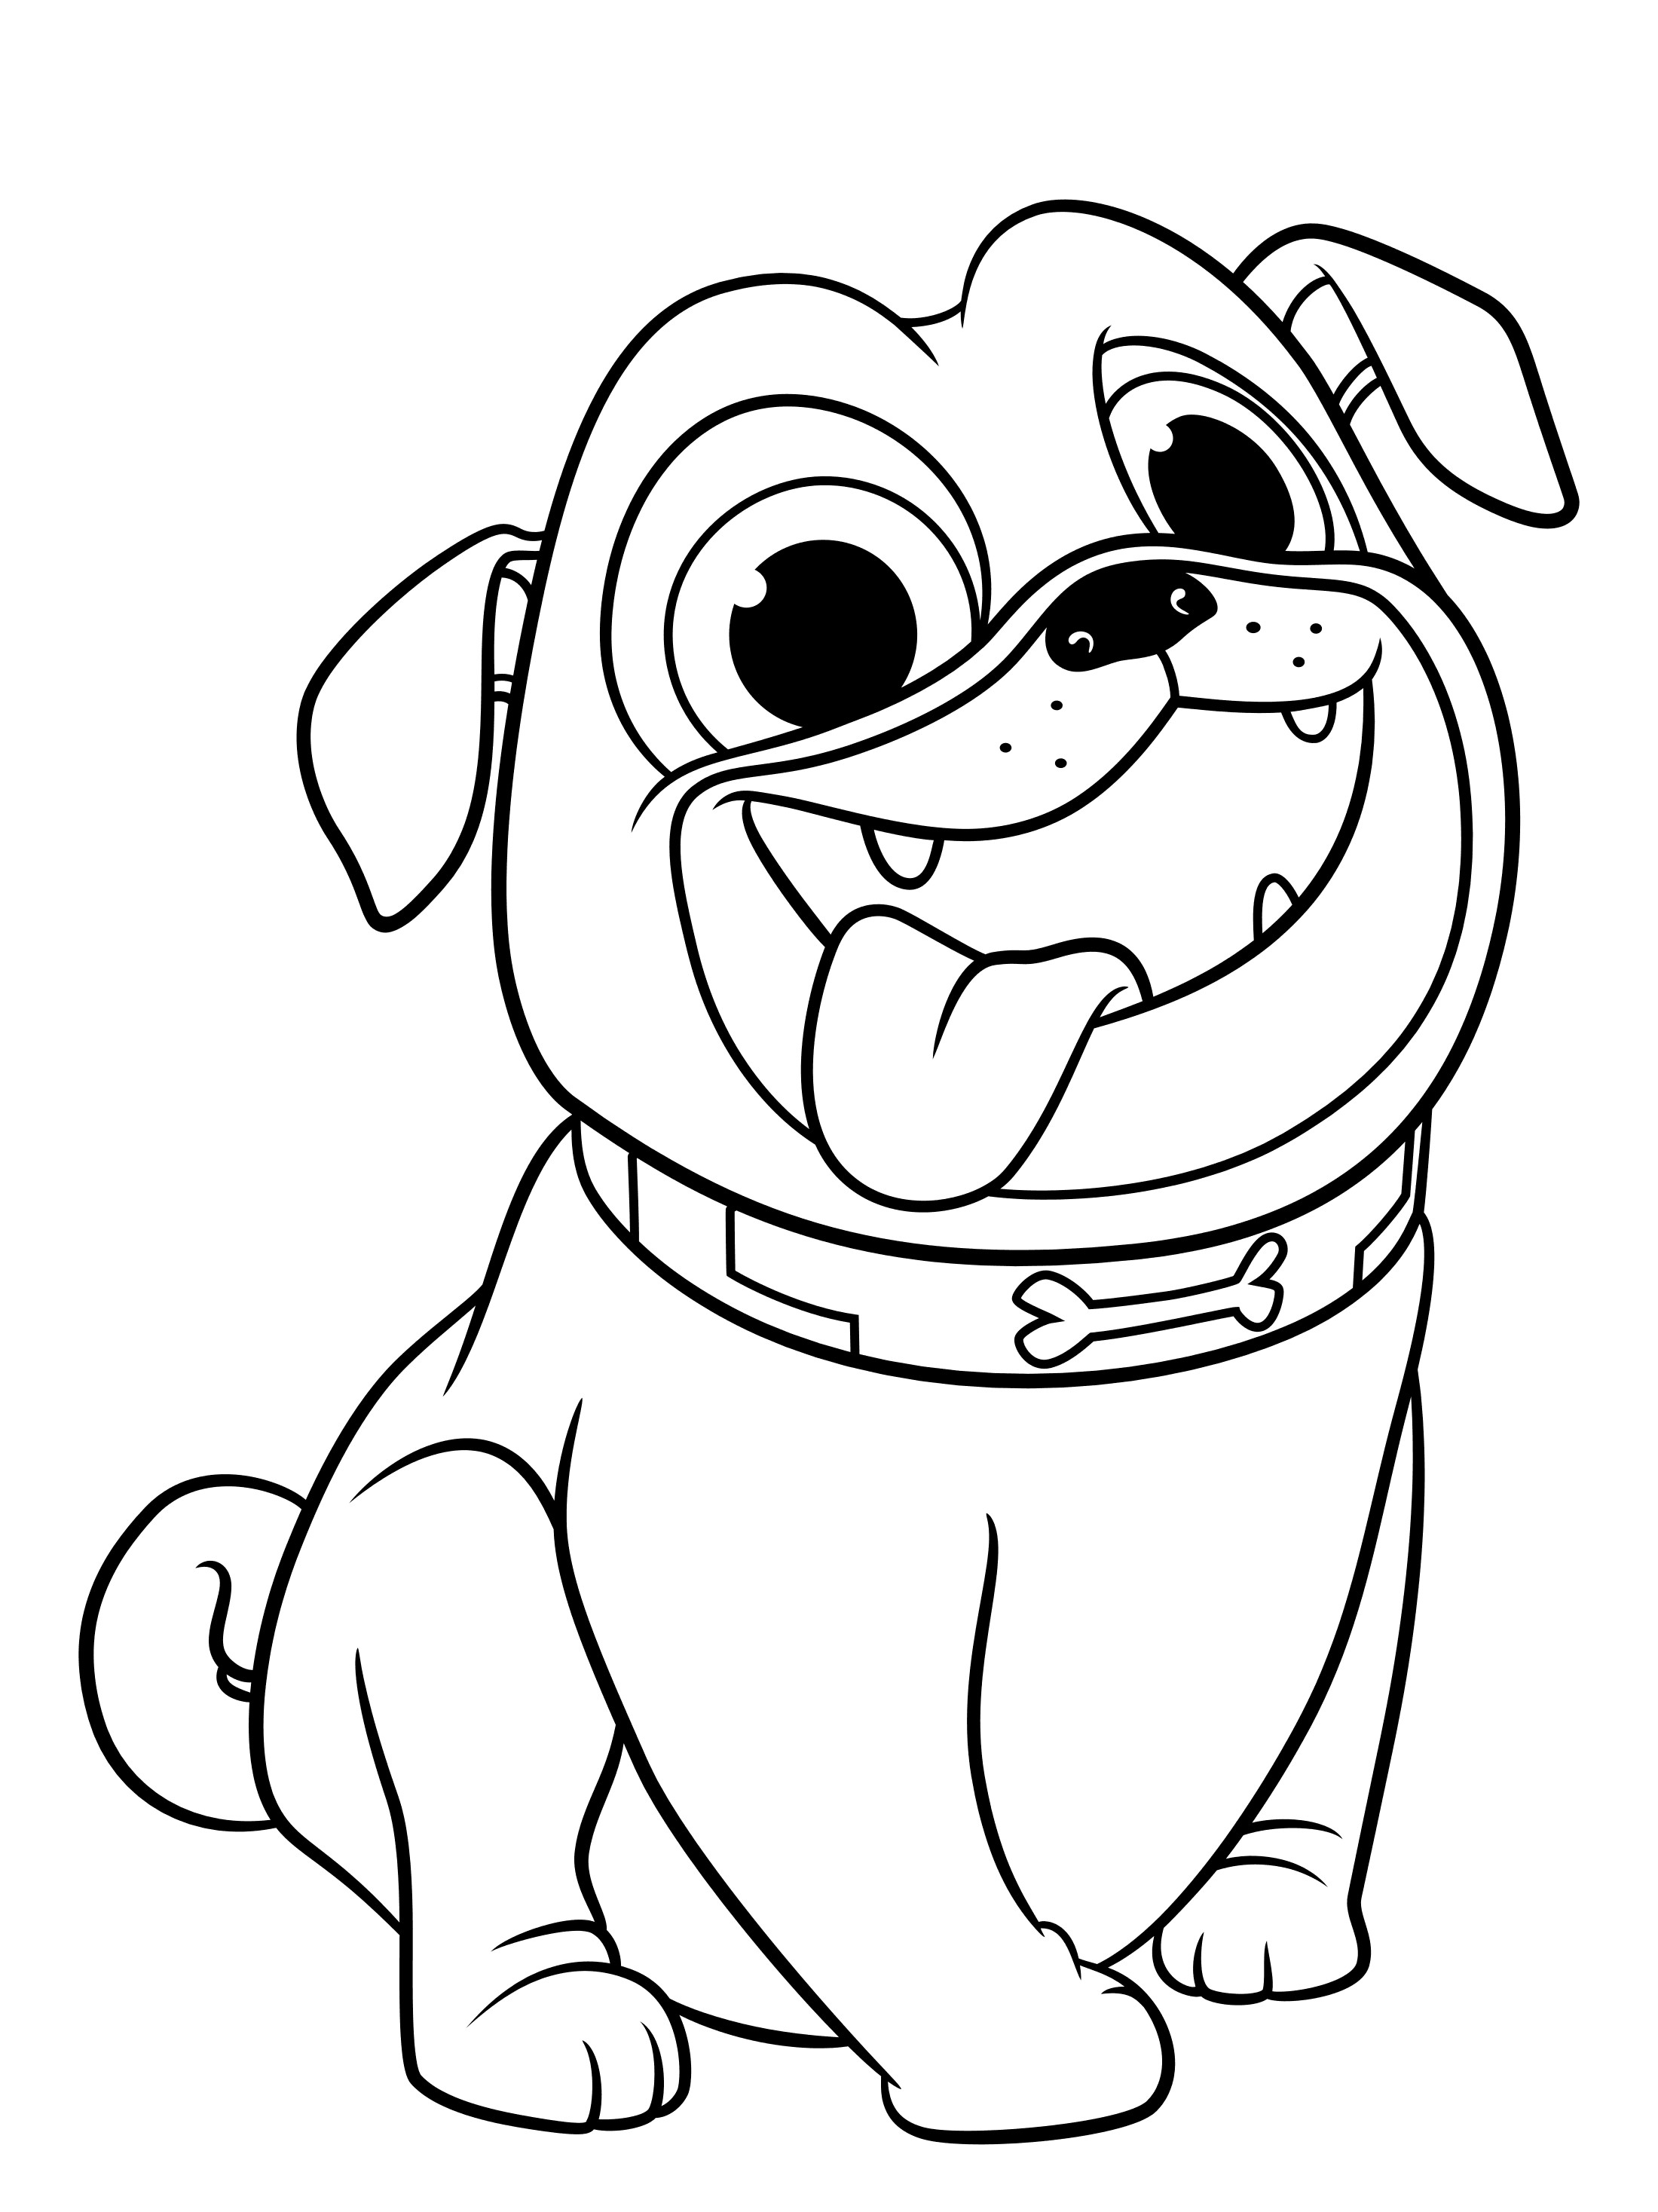 free printable dog coloring pages dog free printable coloring pages printable pages dog coloring free